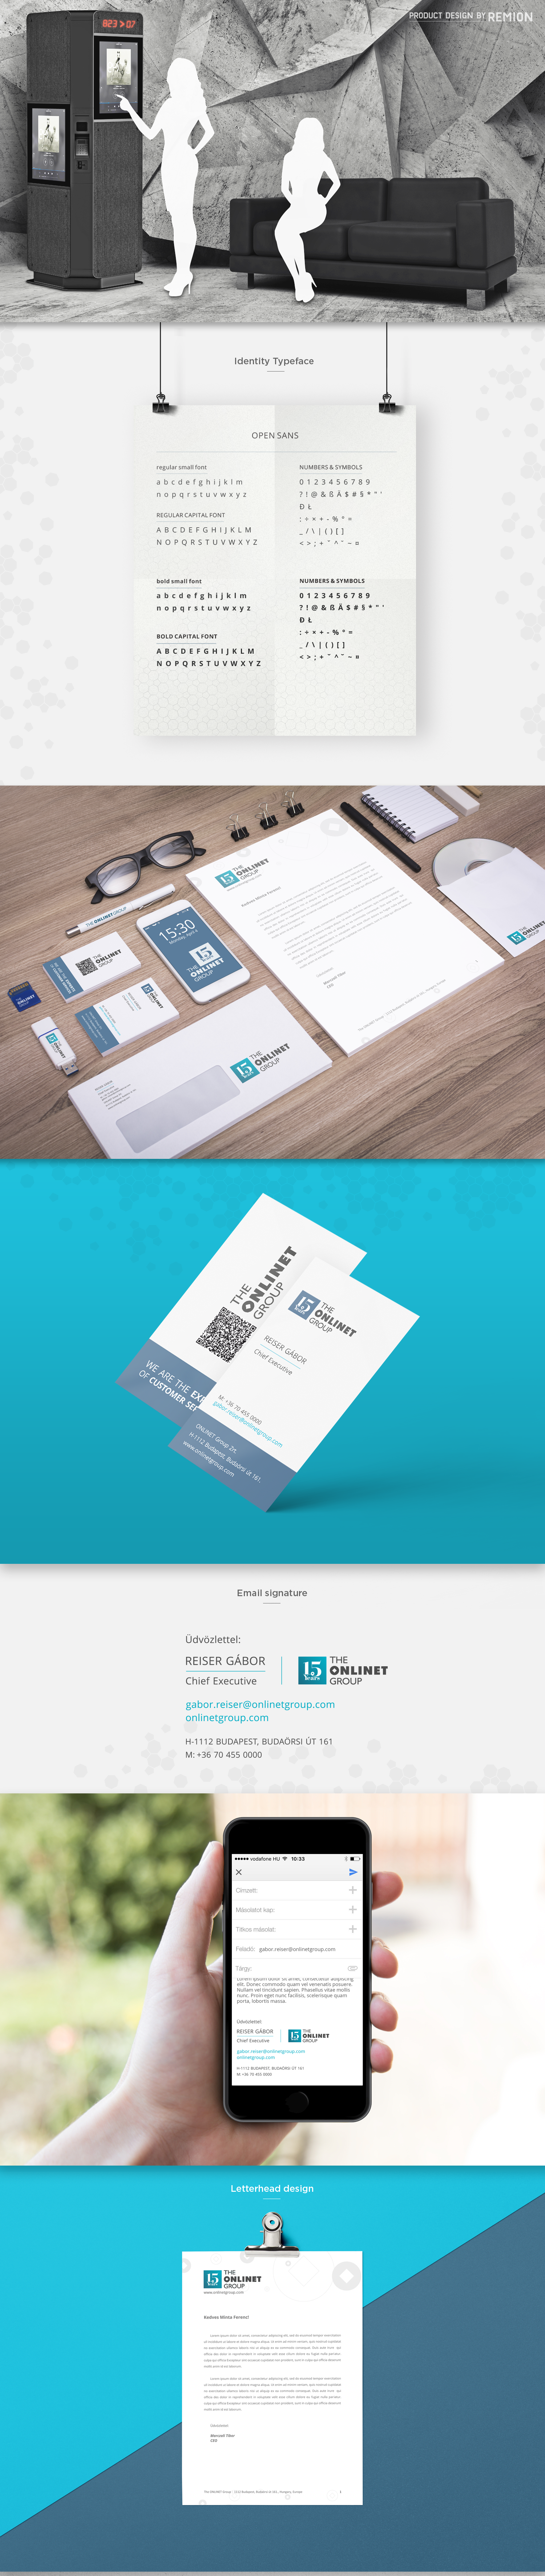 The ONLINET Group Identity Facelift - 1 by REMION Design Studio